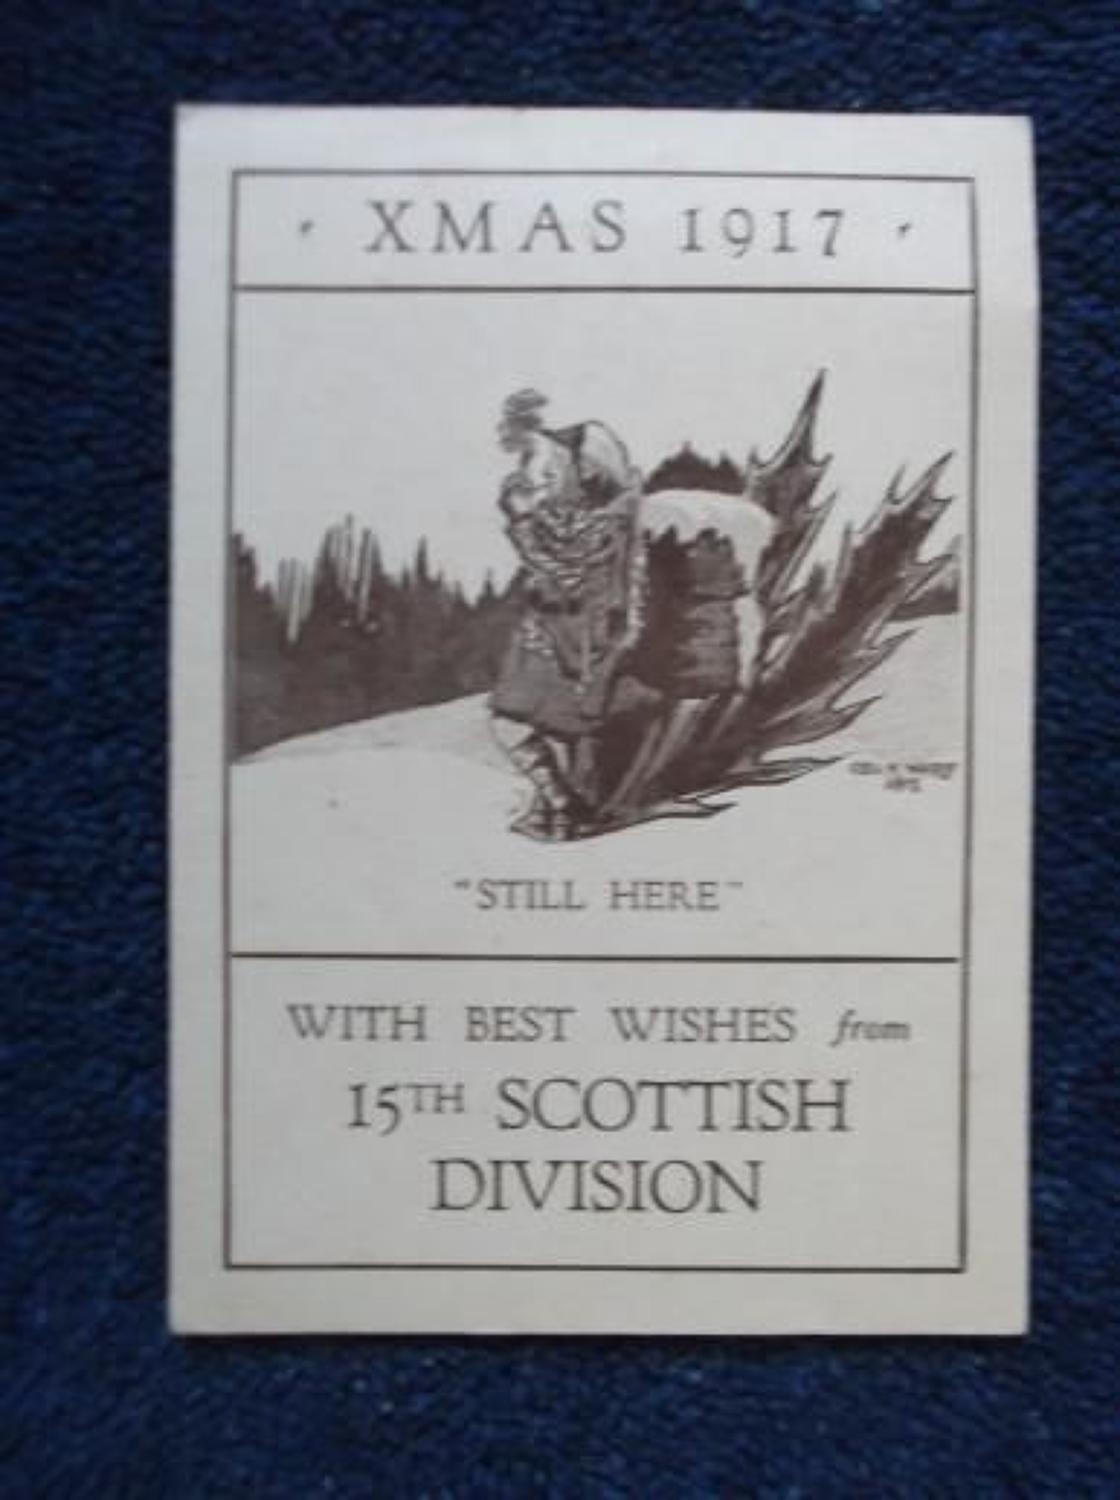 WW1 British Army 15th Scottish Division Christmas Card 1917.